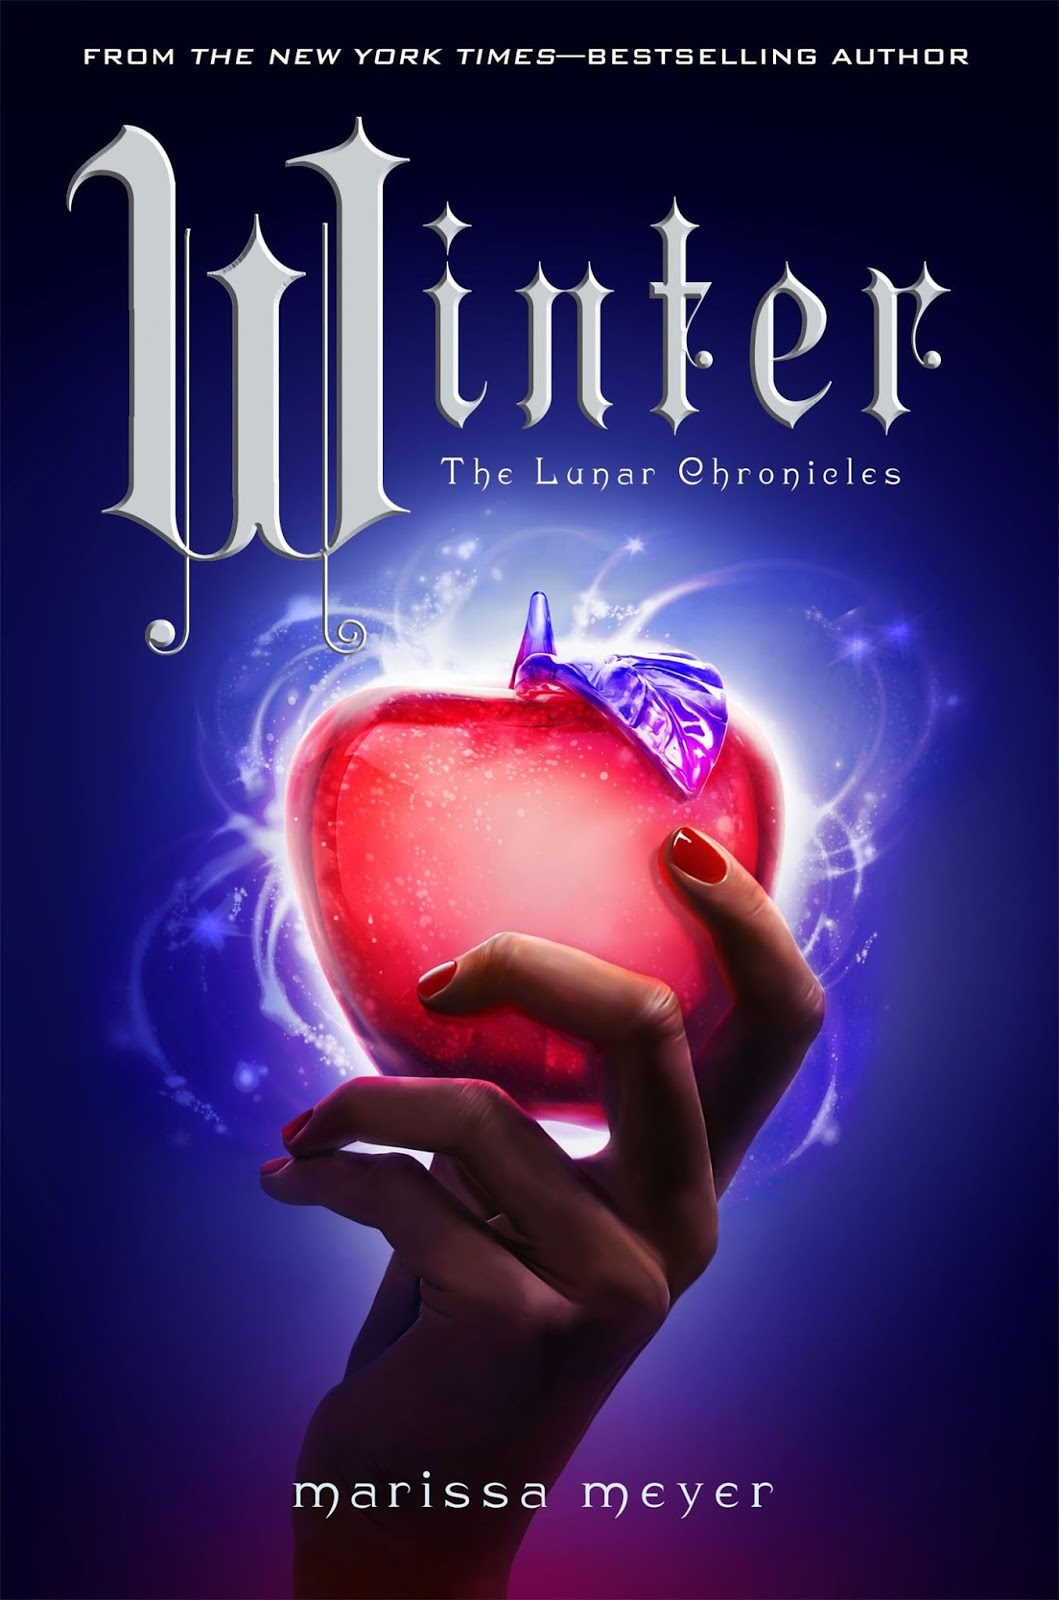 Winter Marissa Meyer Cover The Lunar Chronicles